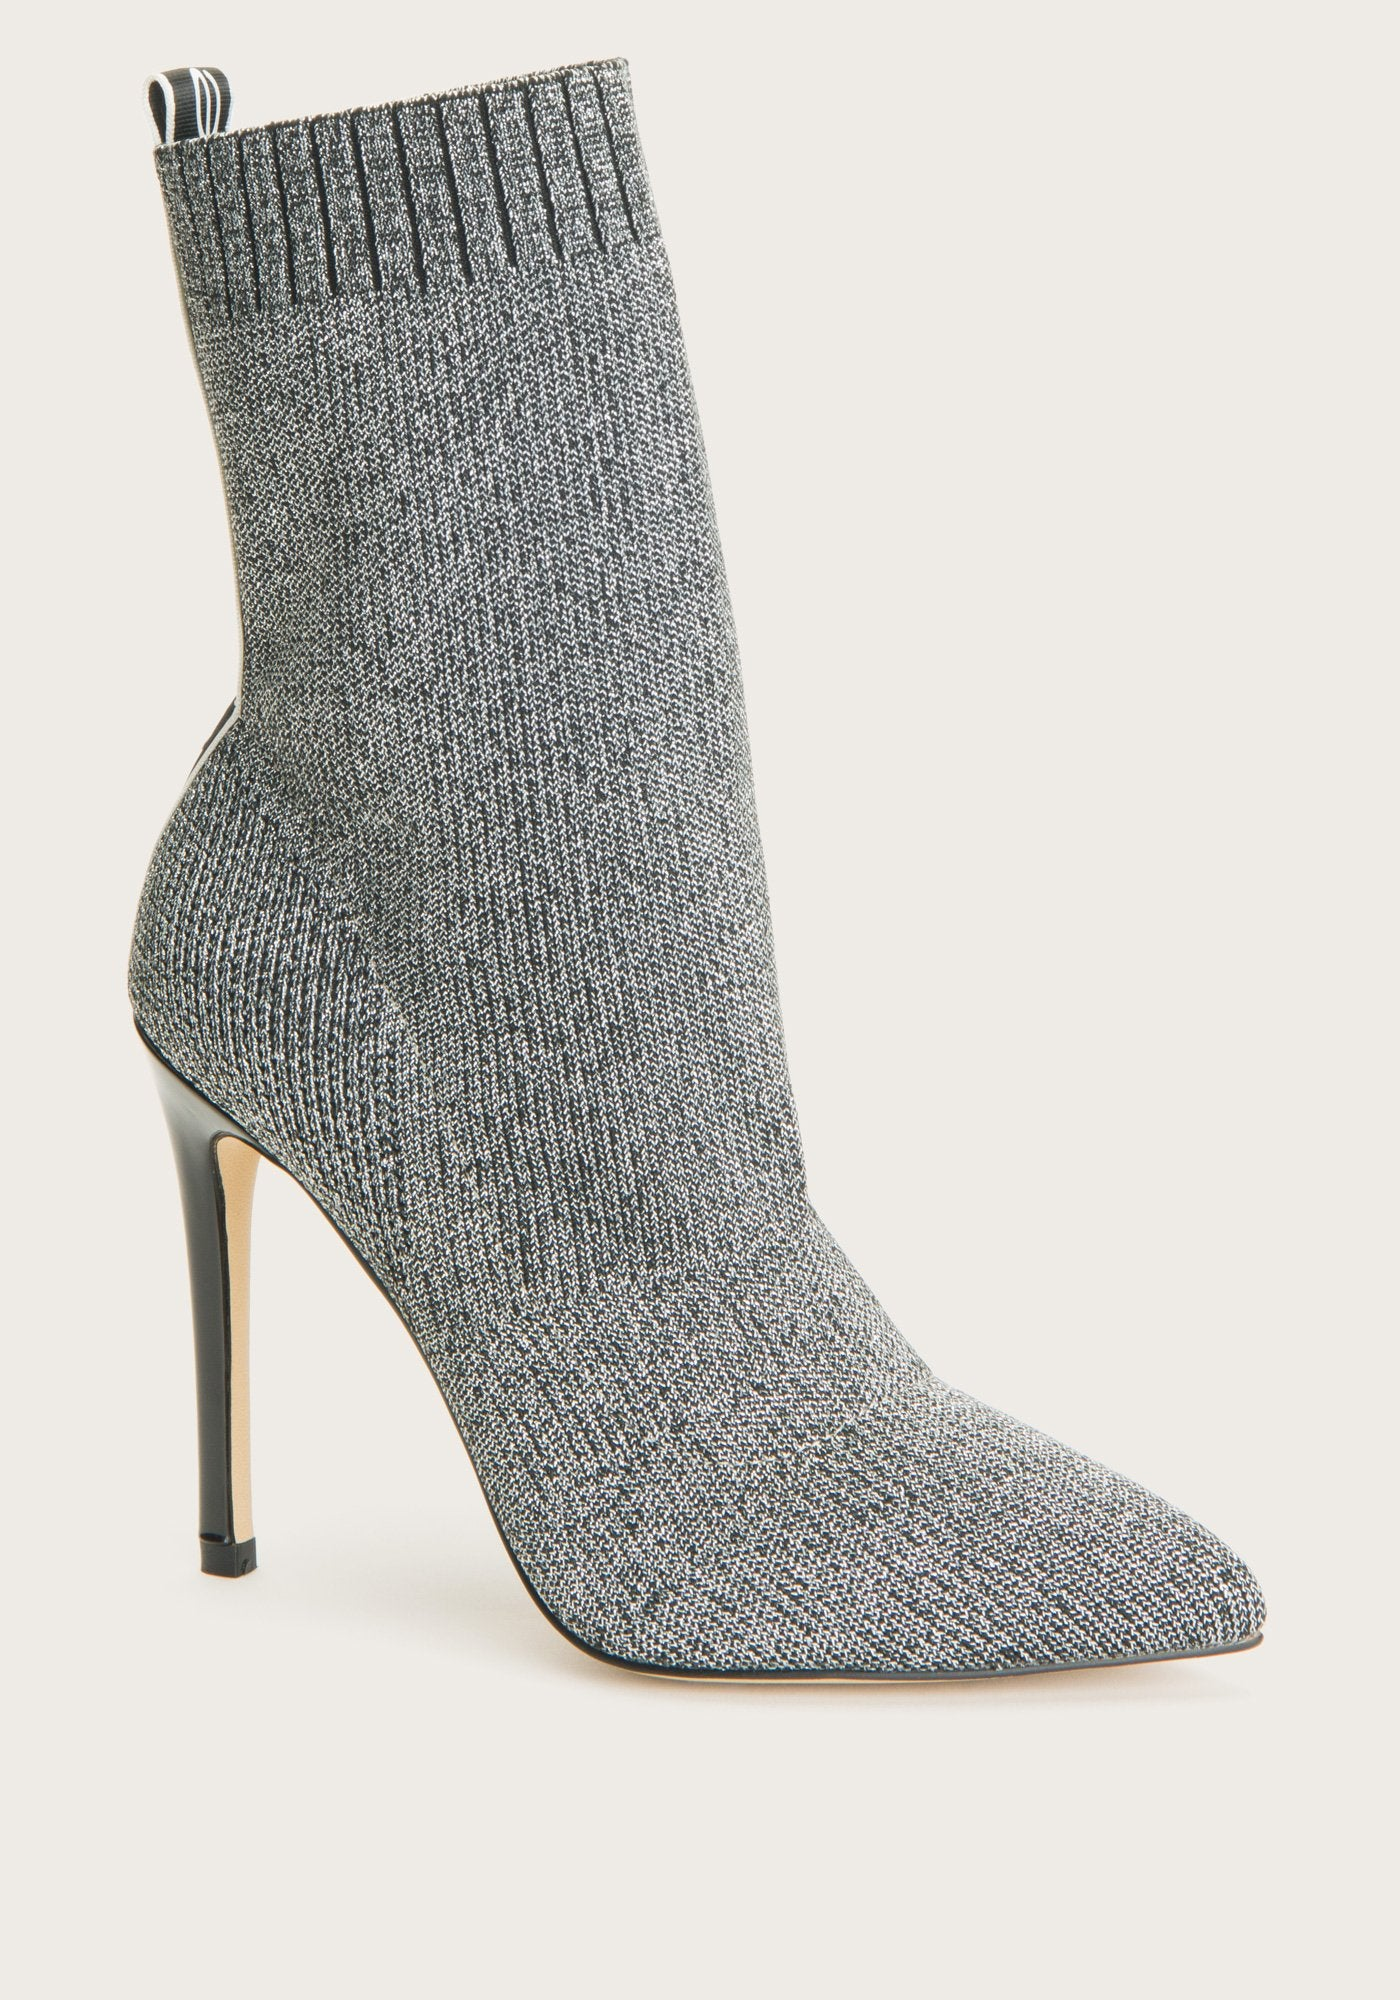 Bebe Women's Discover Sock Ankle Boots, Size 6 in Silver Synthetic